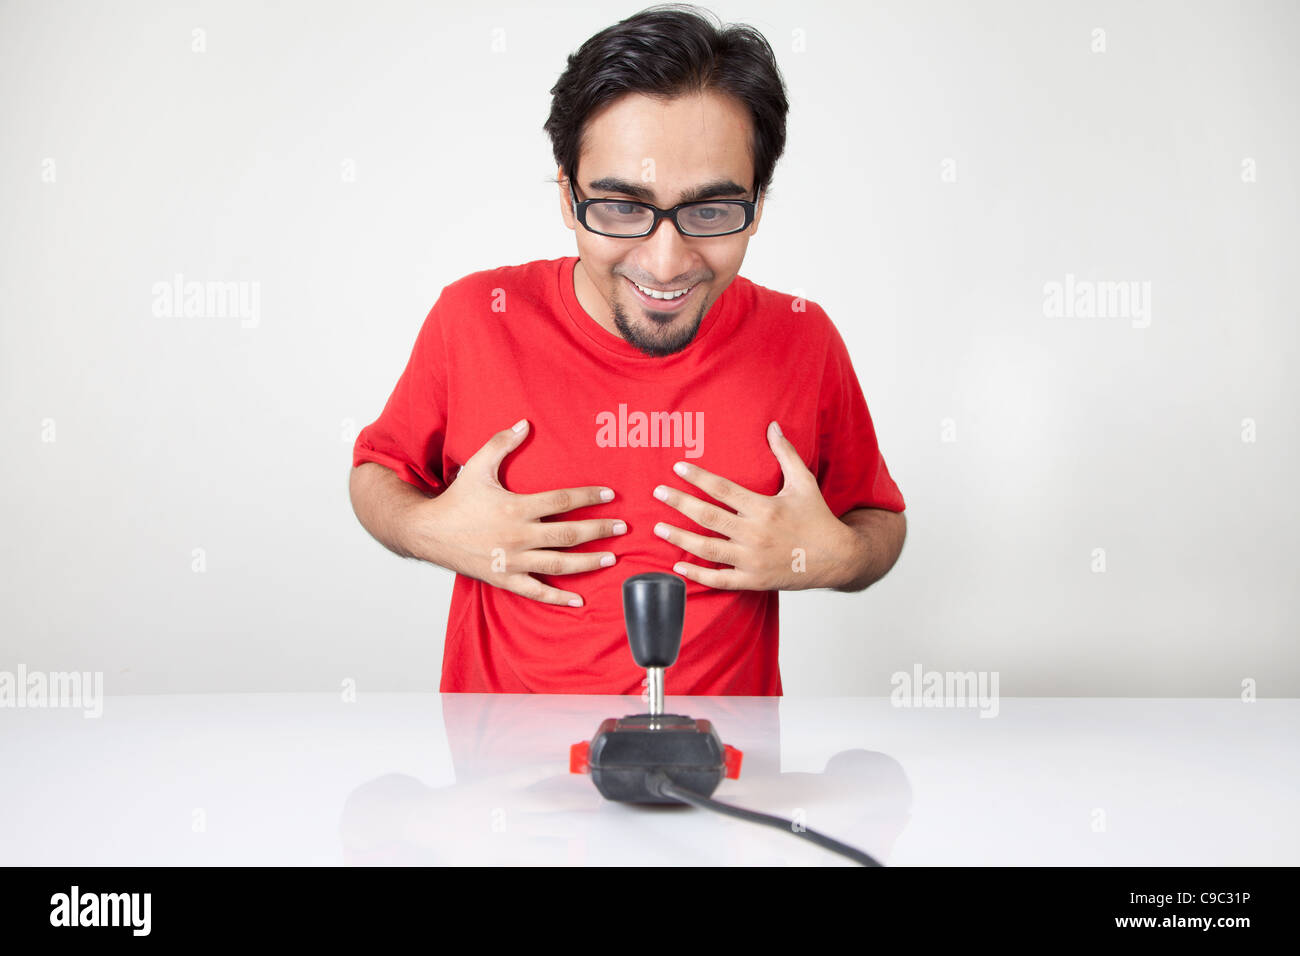 Game nerd excited to see a retro joystick - Stock Image